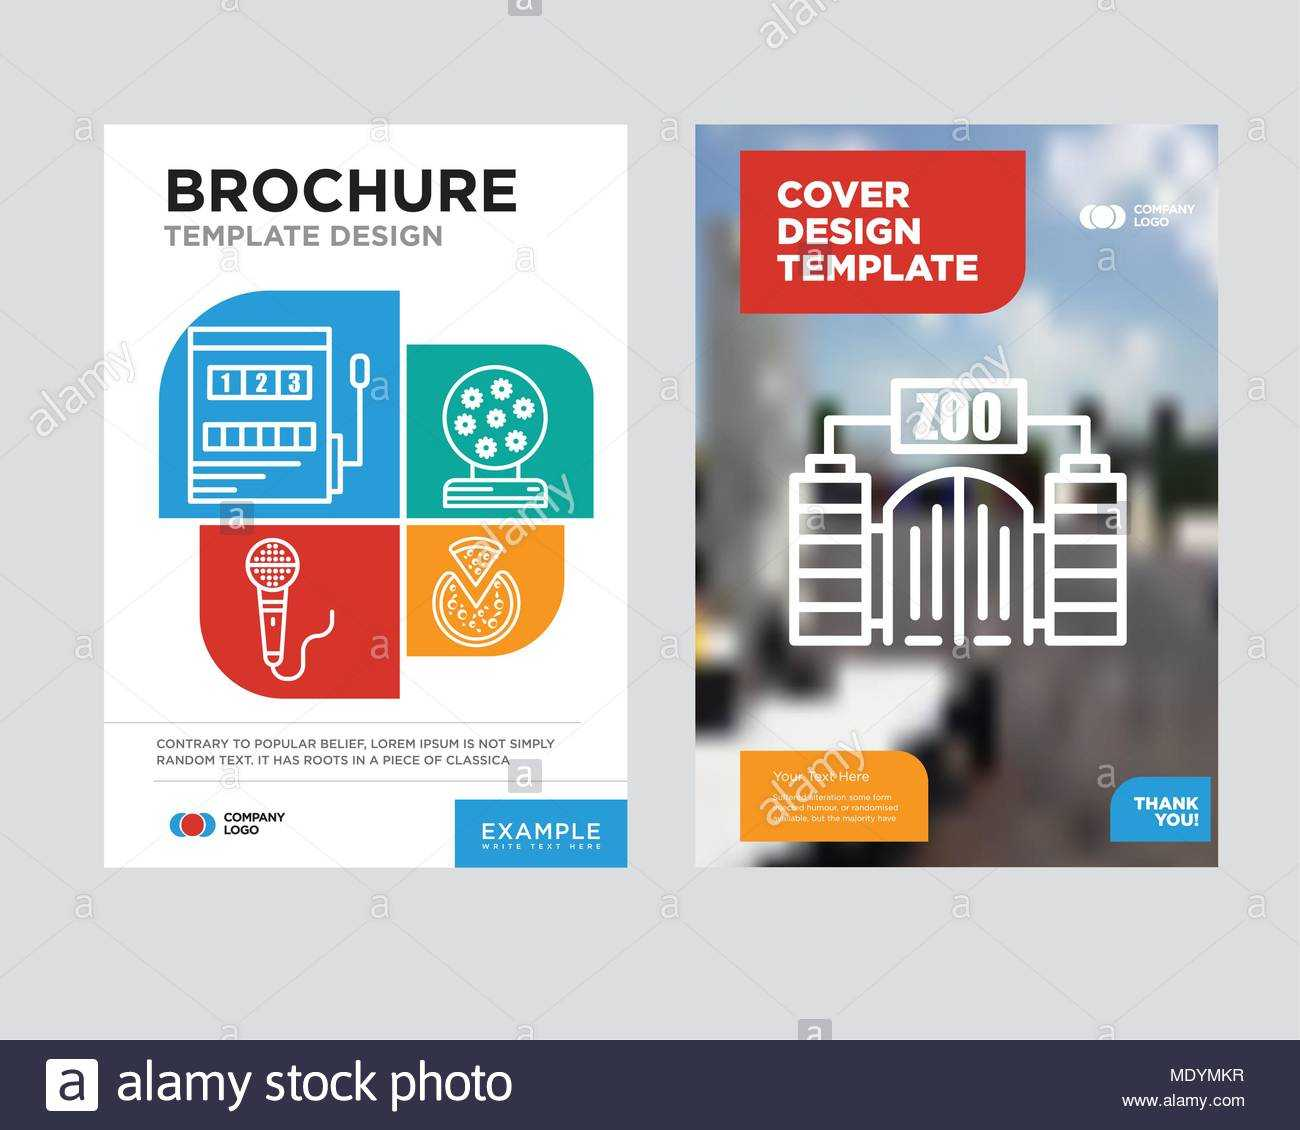 Zoo Brochure Flyer Design Template With Abstract Photo For Zoo Brochure Template